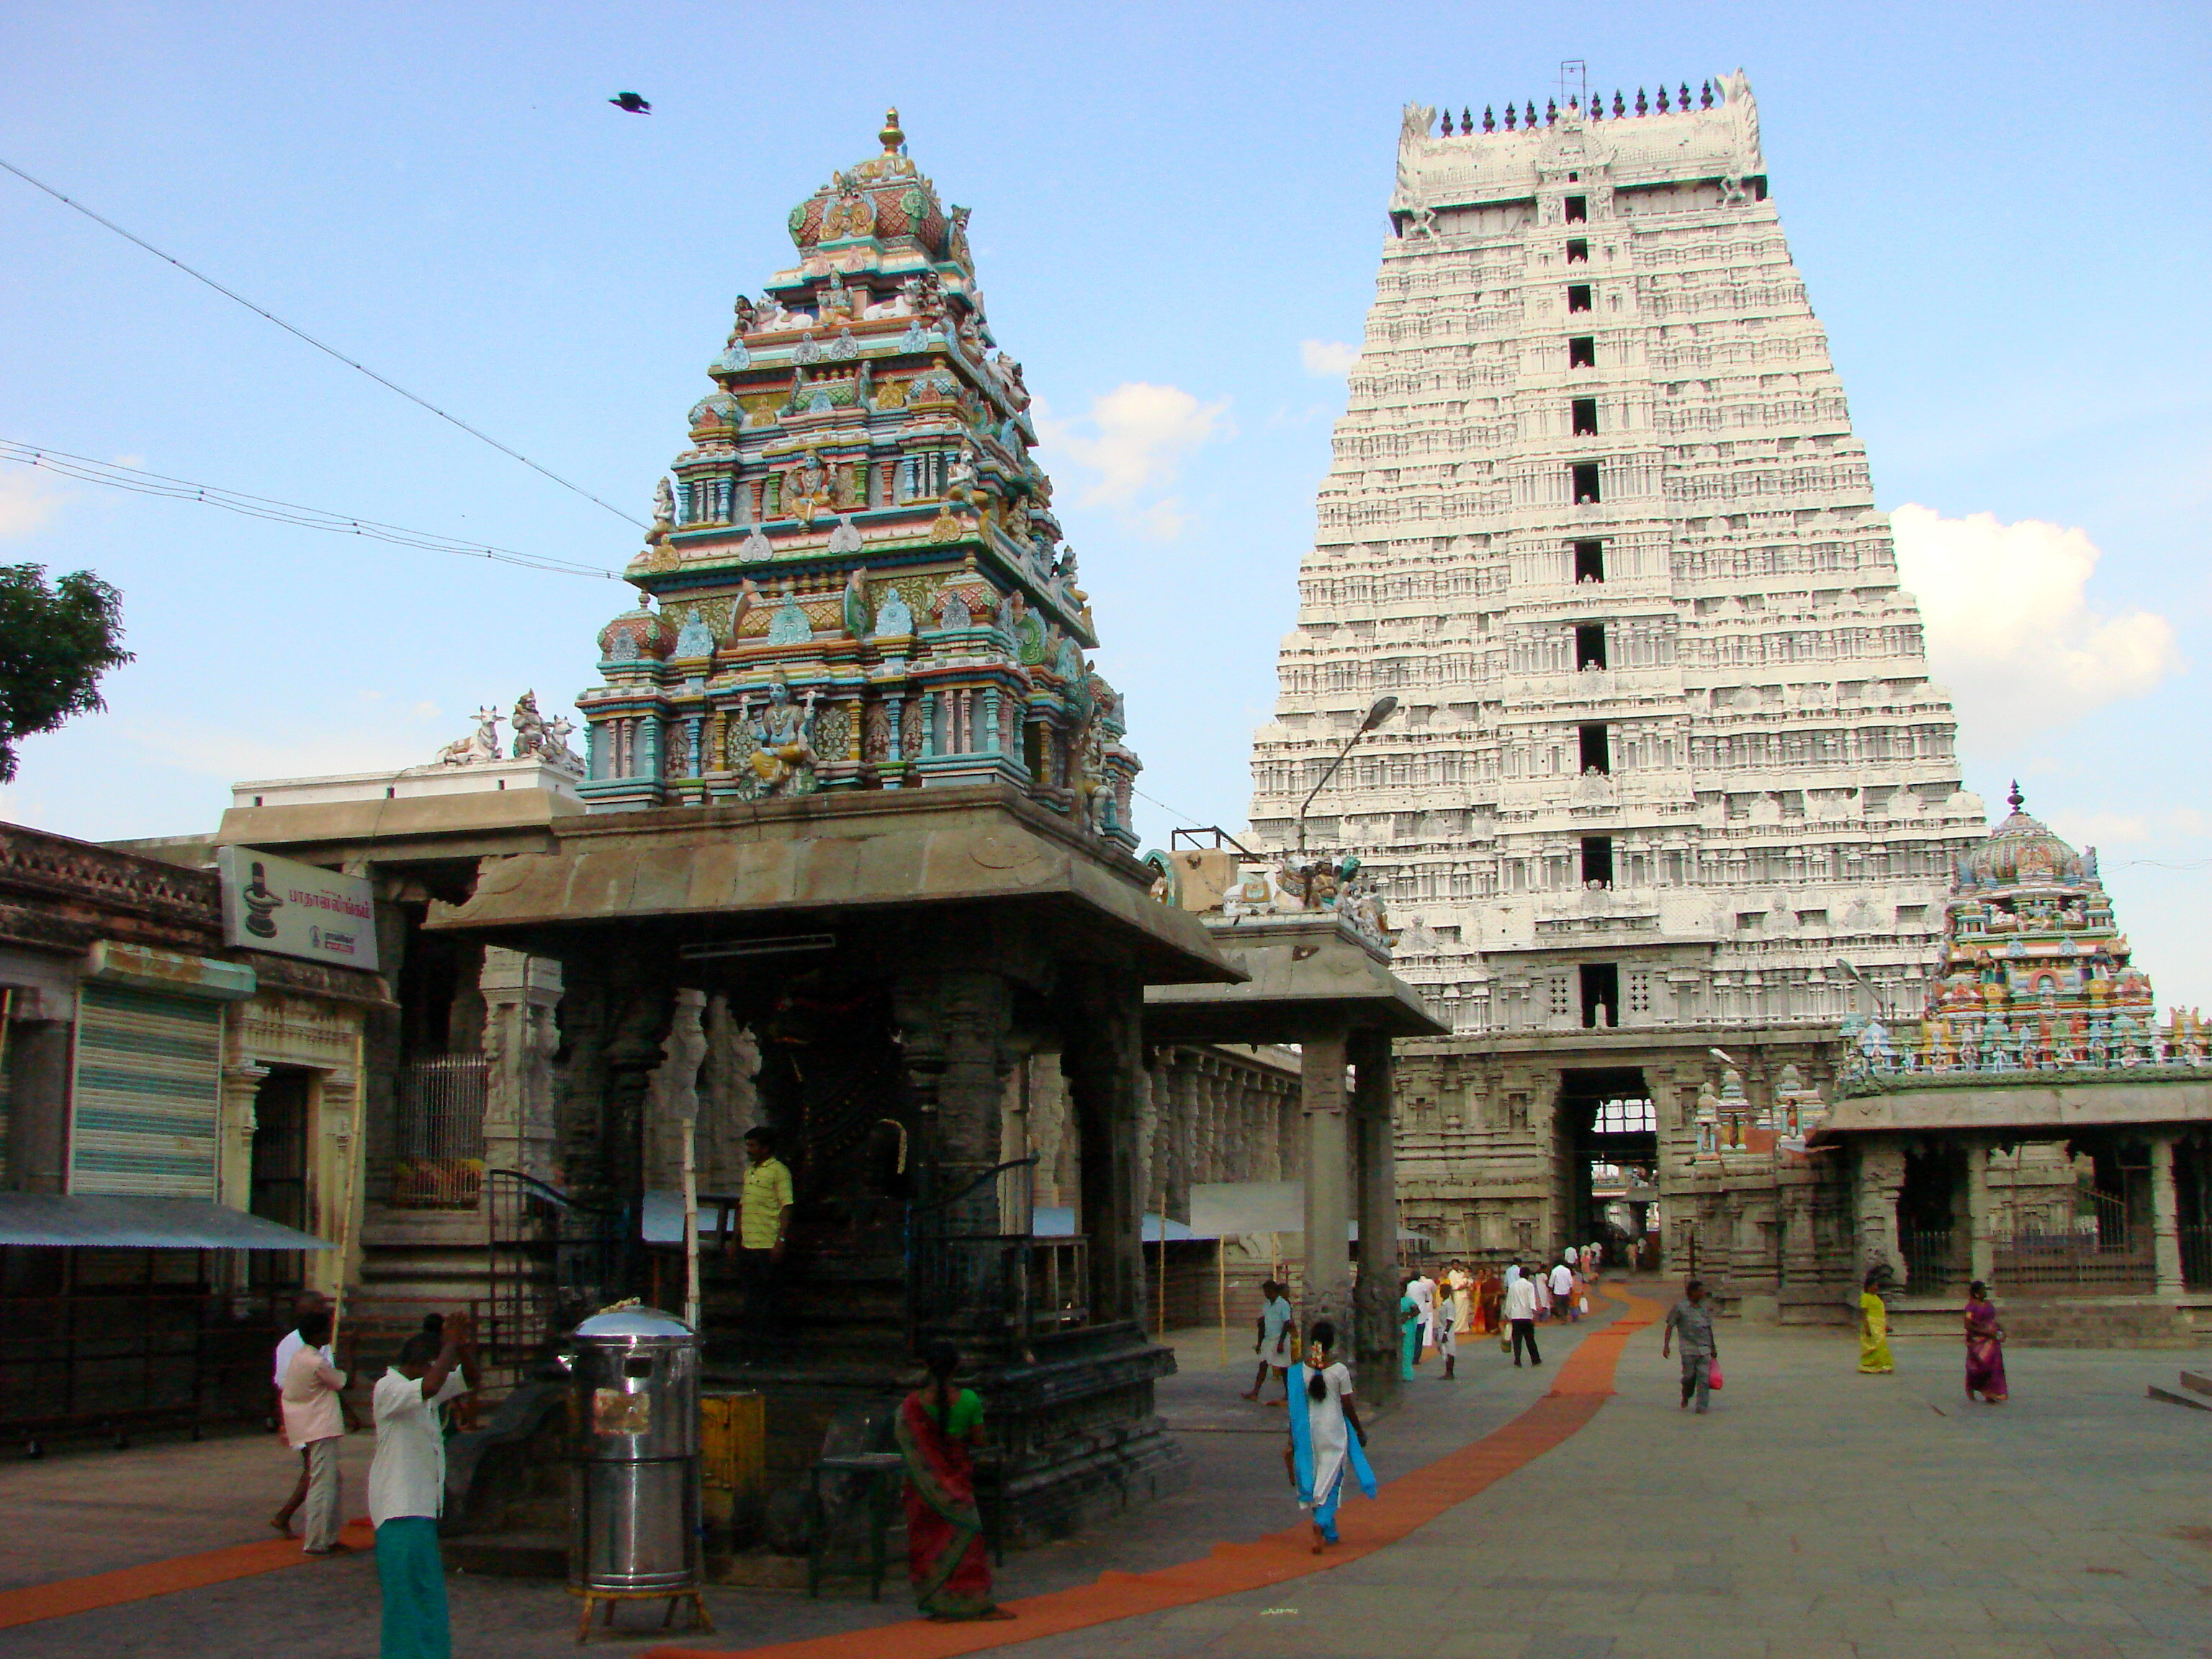 File:Arunchaleshvara Temple - Tiruvannamalai - India.JPG - Wikipedia ...